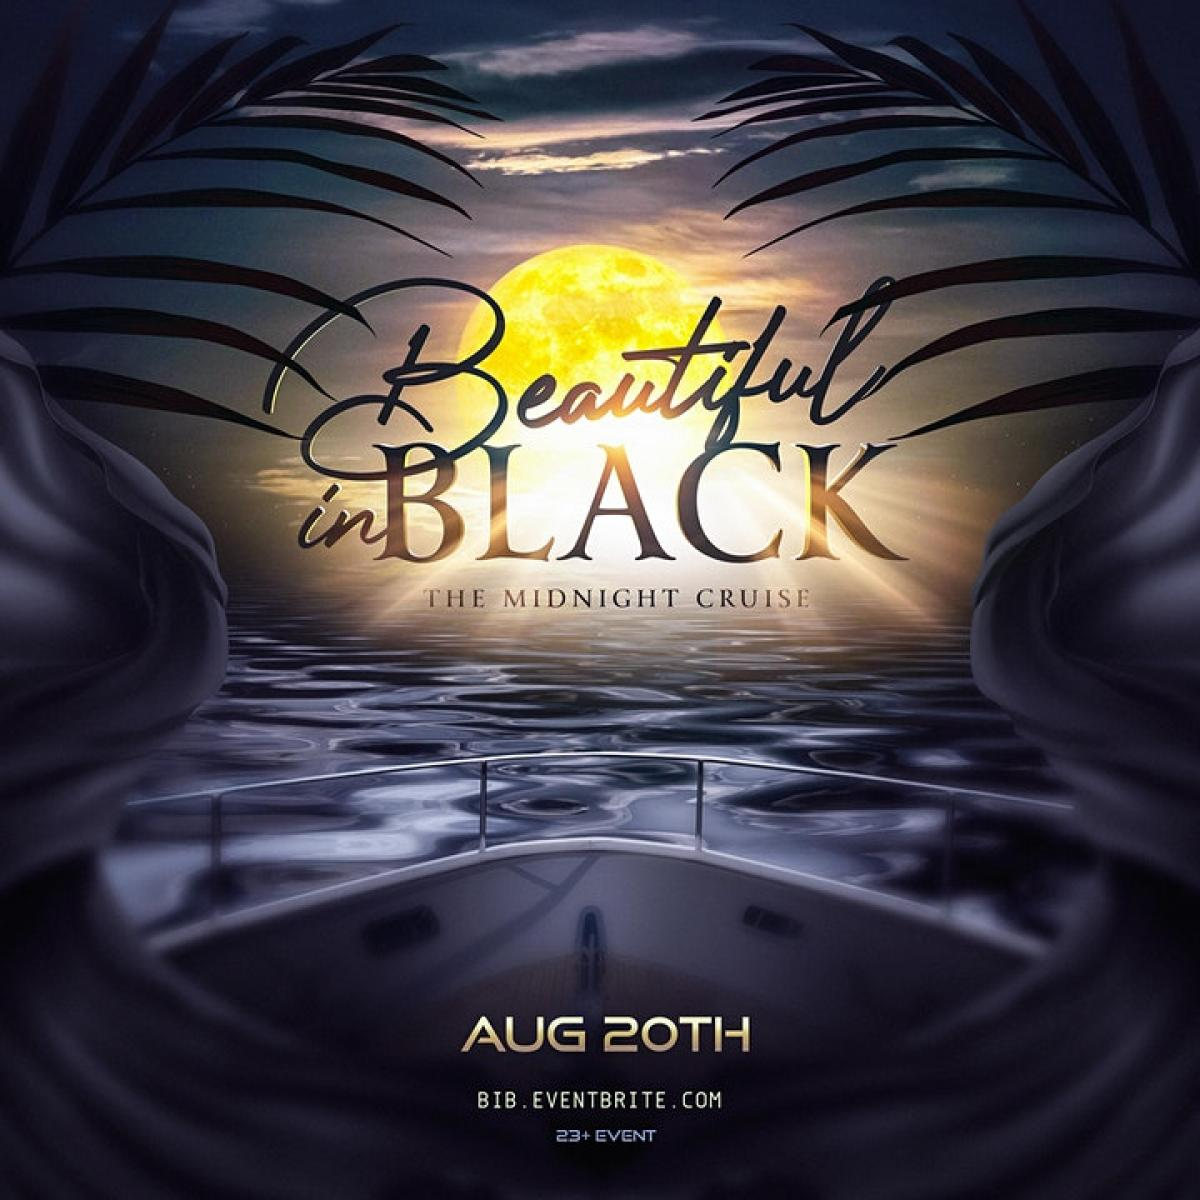 Beautiful in Black flyer or graphic.